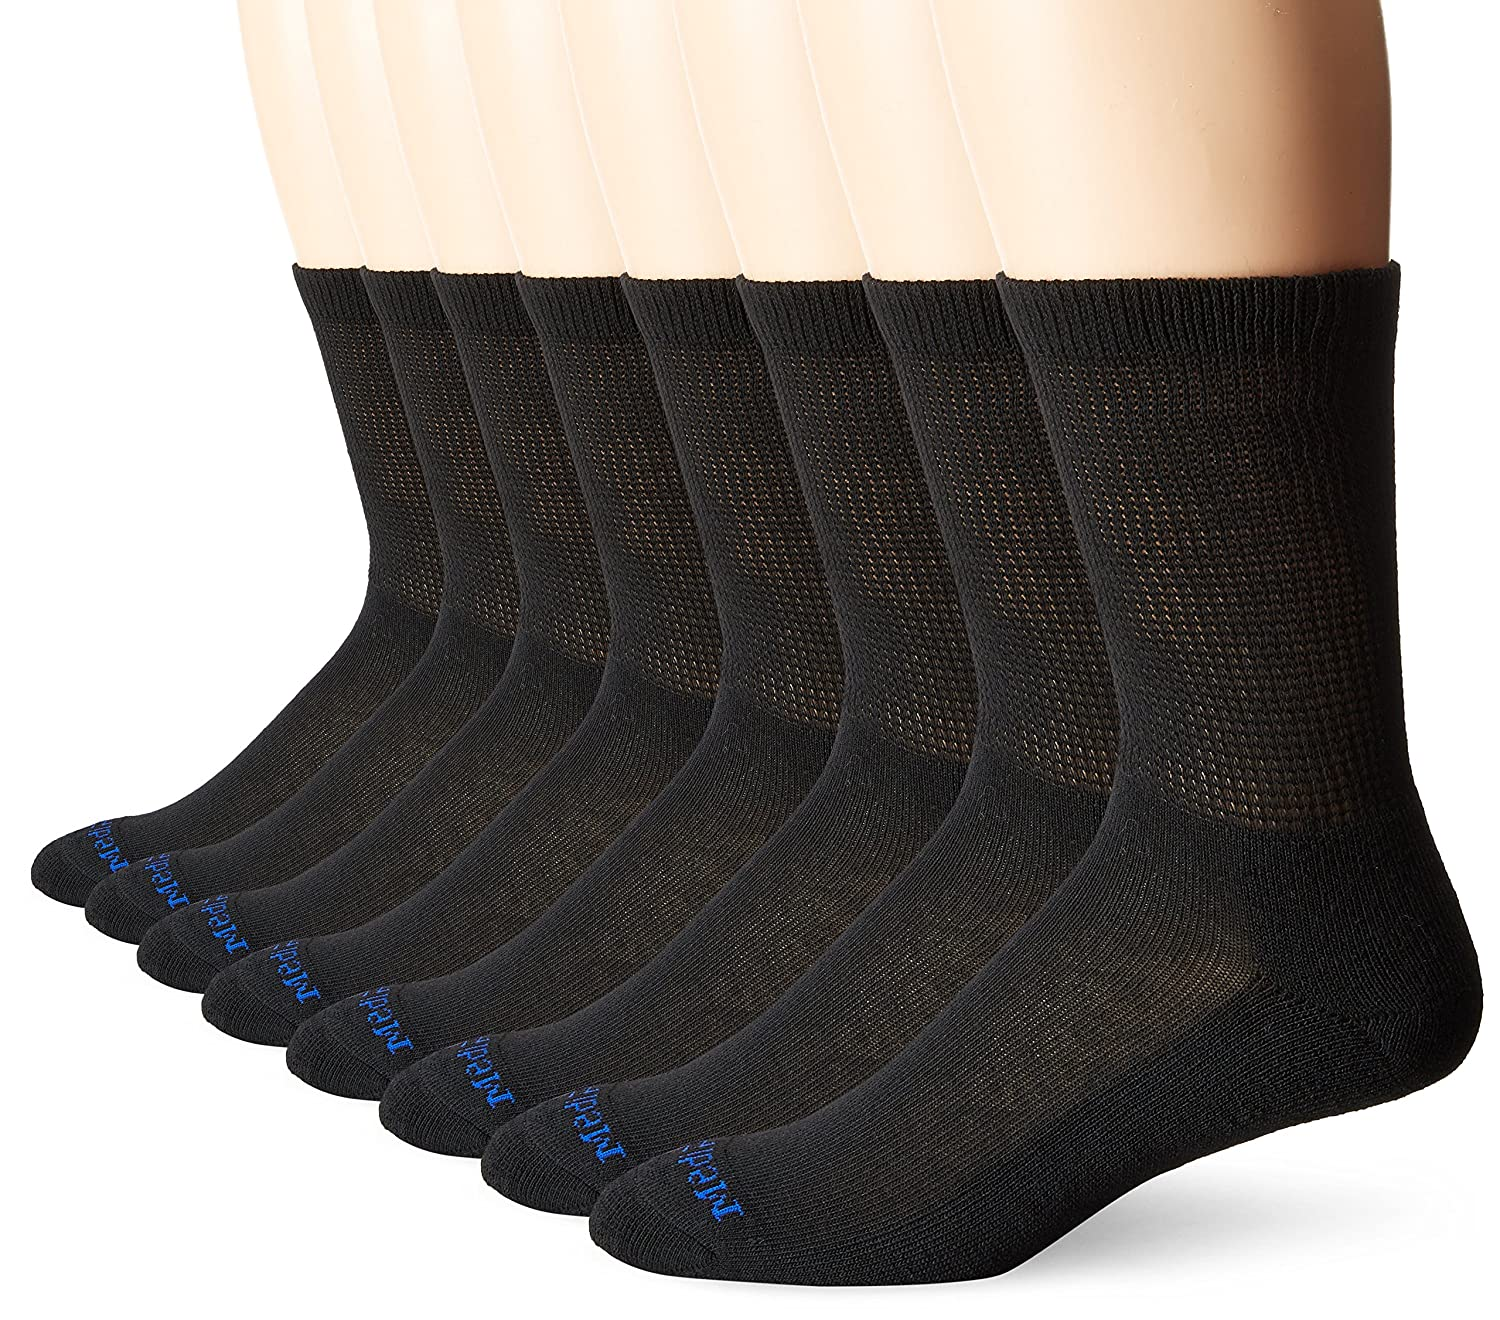 MediPEDS Men's 8 Pack Diabetic Crew Socks with Non-Binding Top, Black, Shoe Size: Men 9-12 / Women 10-13